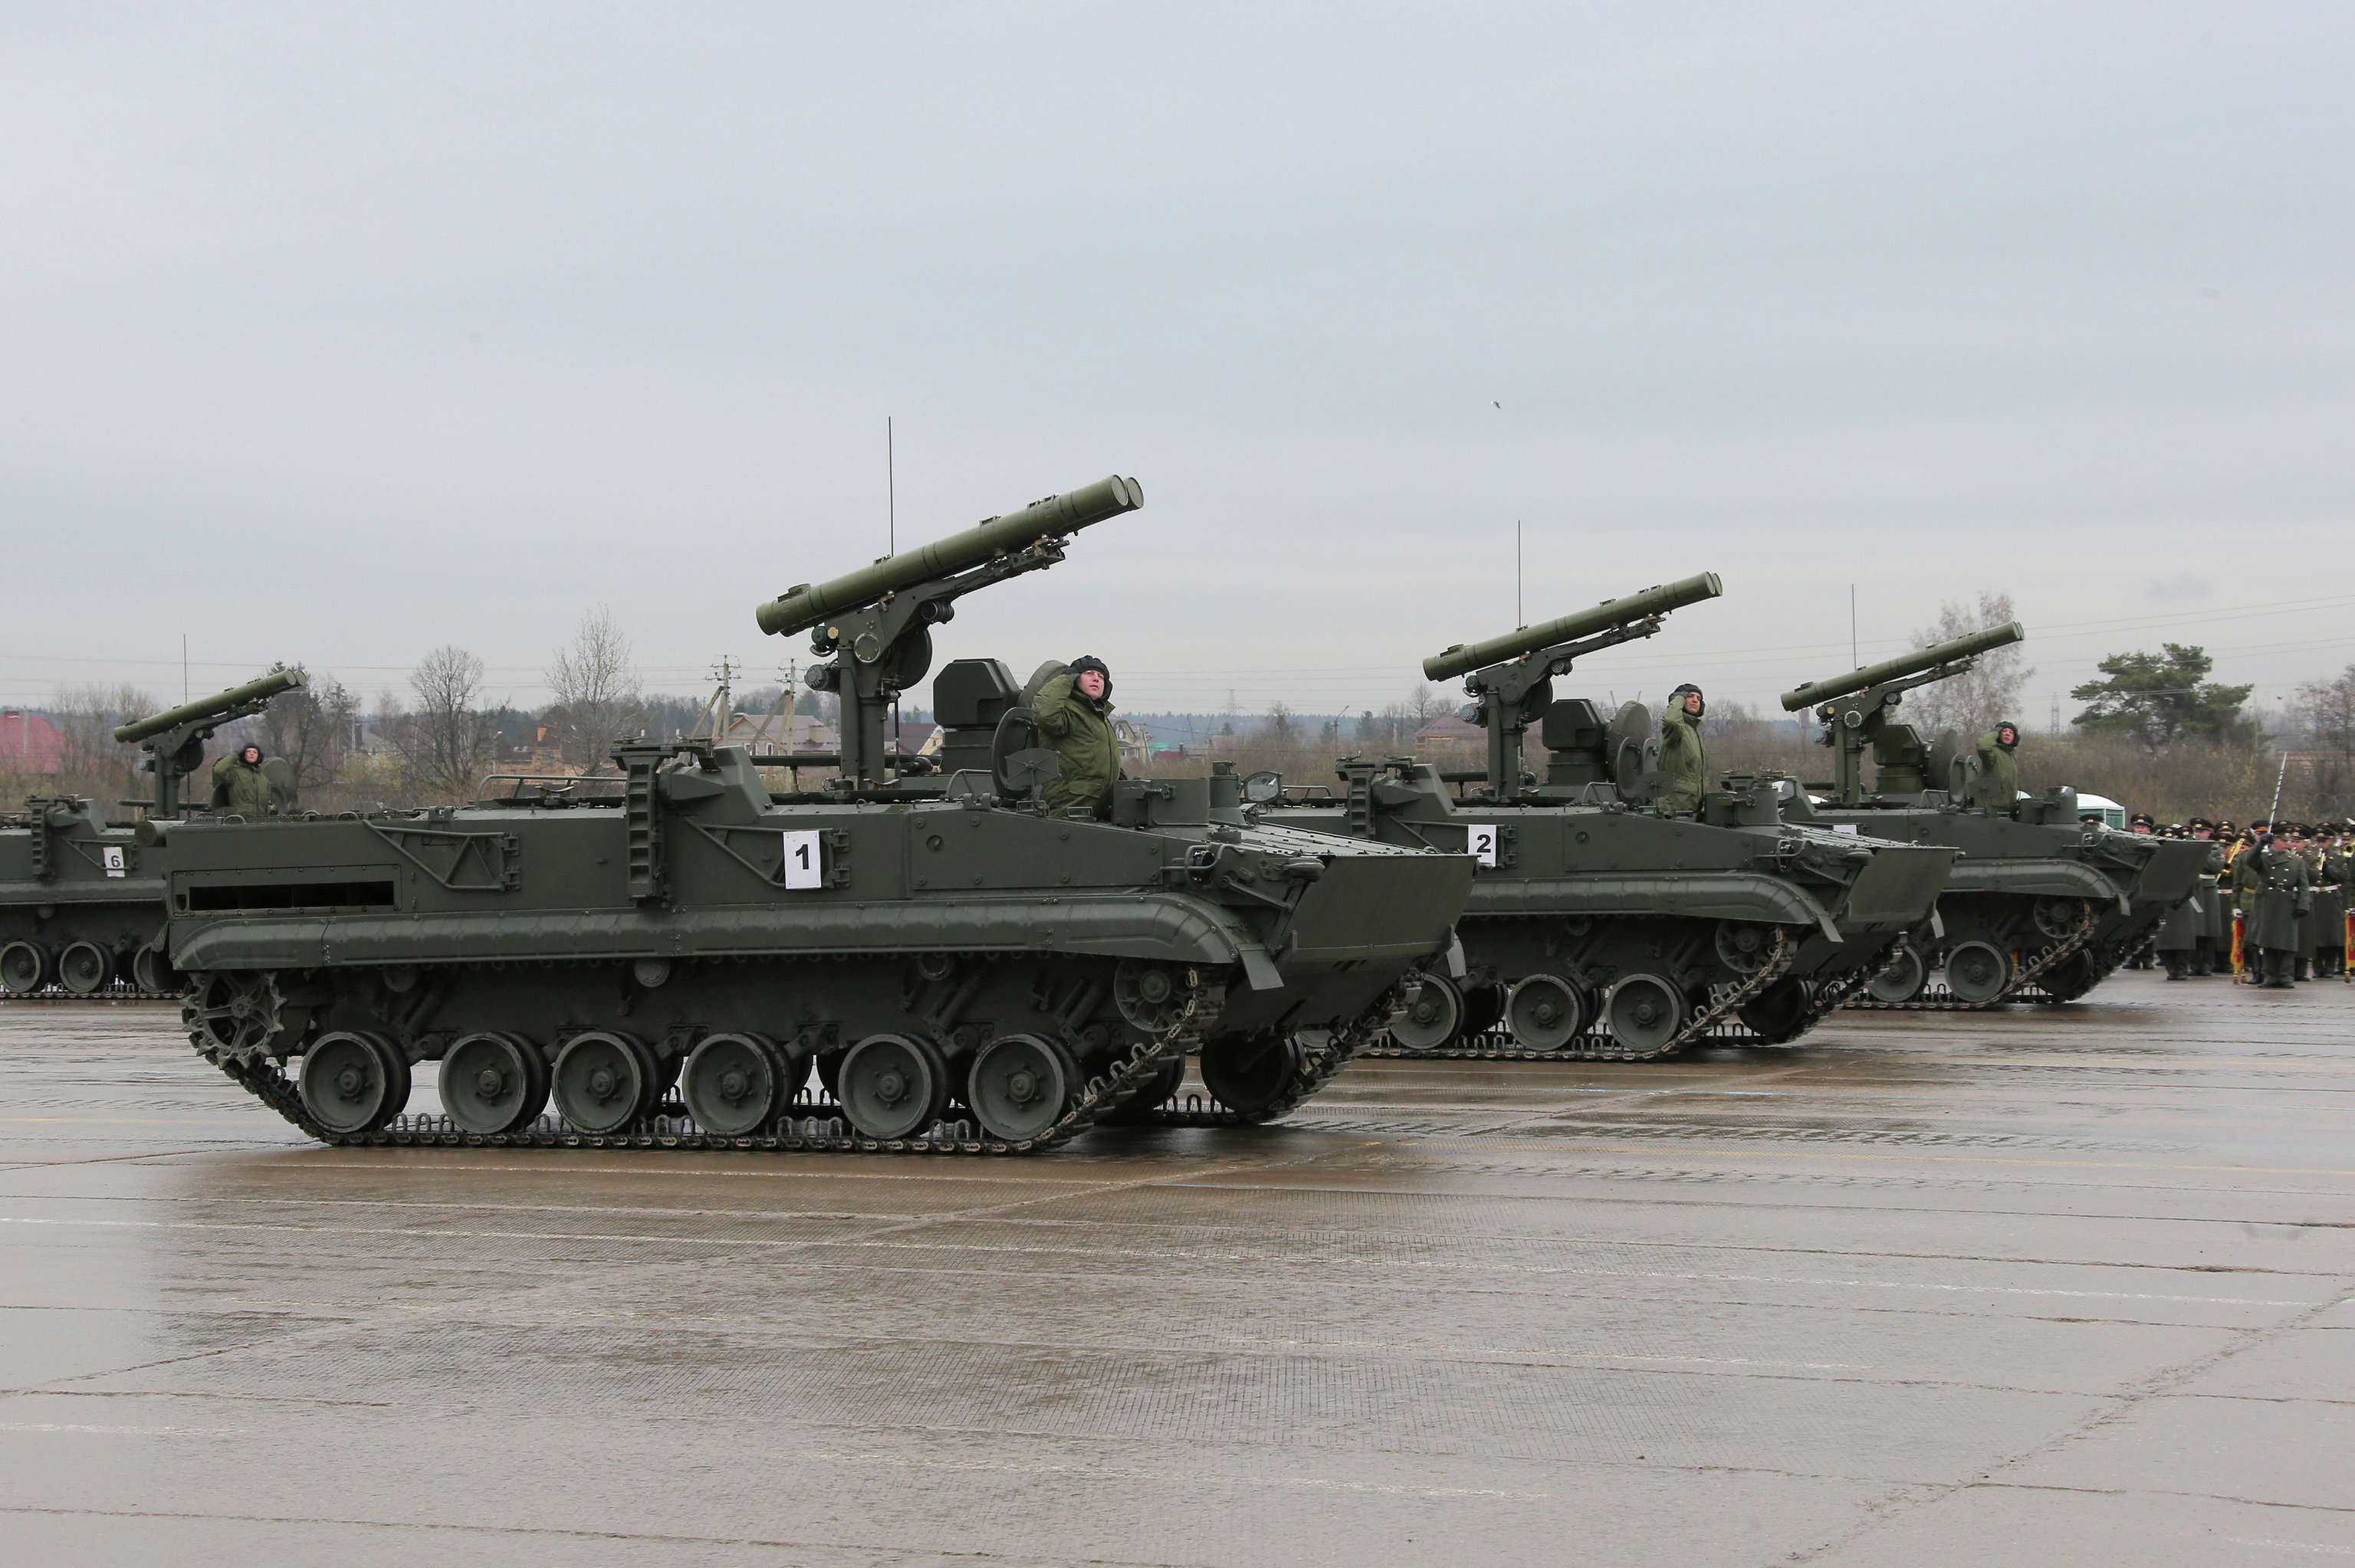 Khrizantema-S anti-tank missile systems at a parade rehearsal outside Moscow.